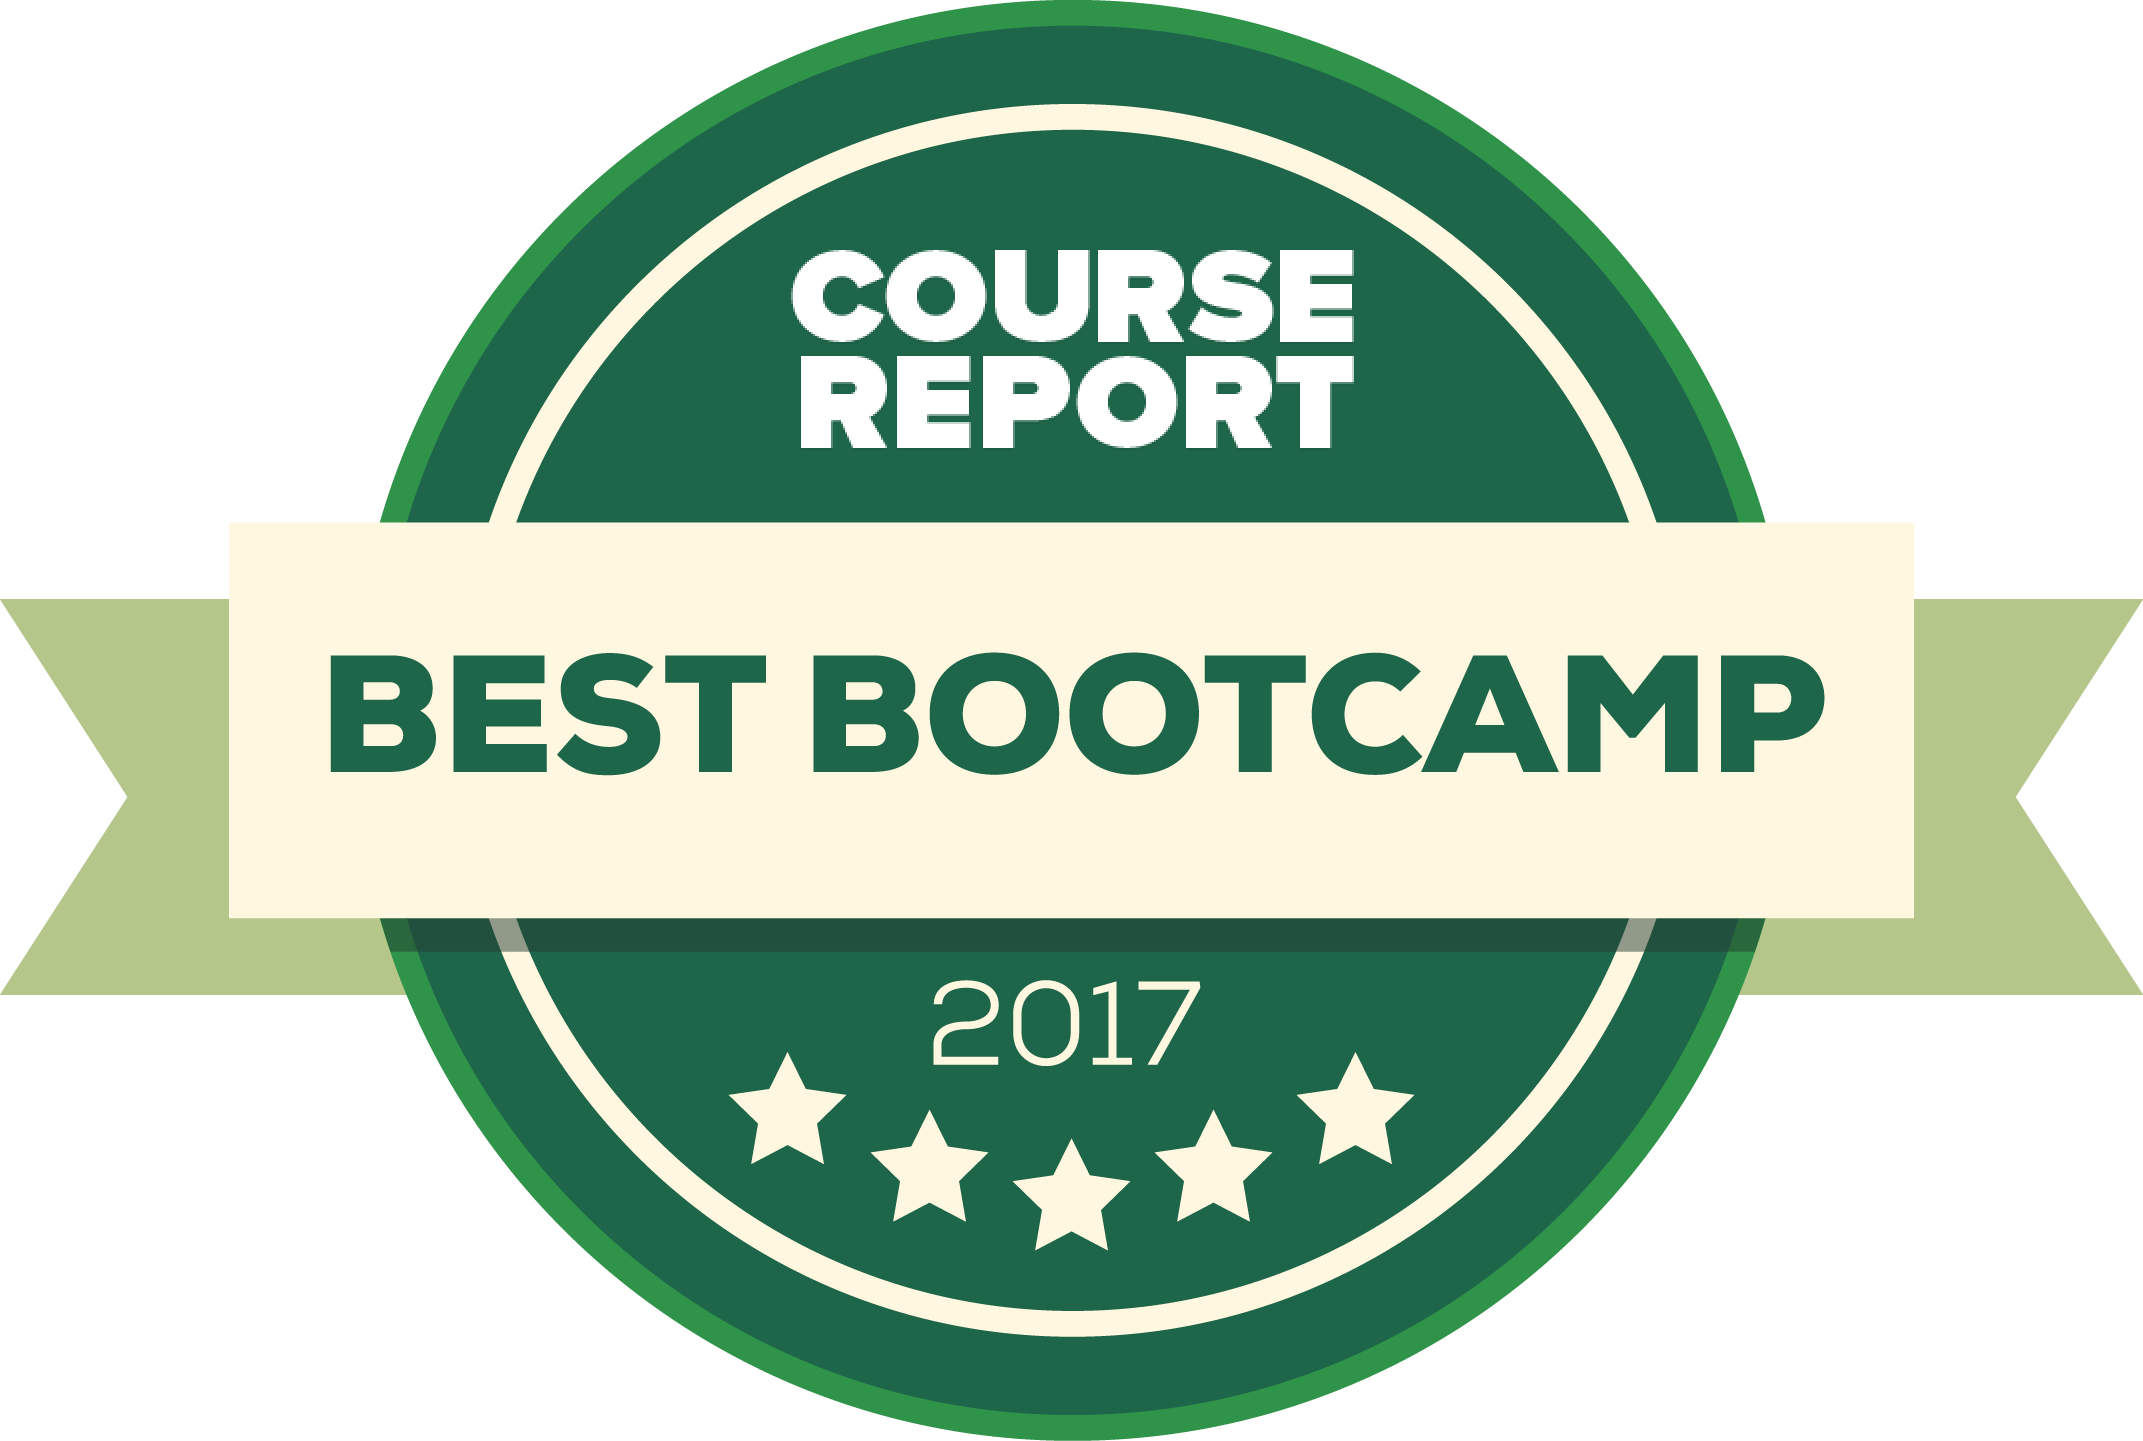 best_bootcamp_badge_course_report_green.png